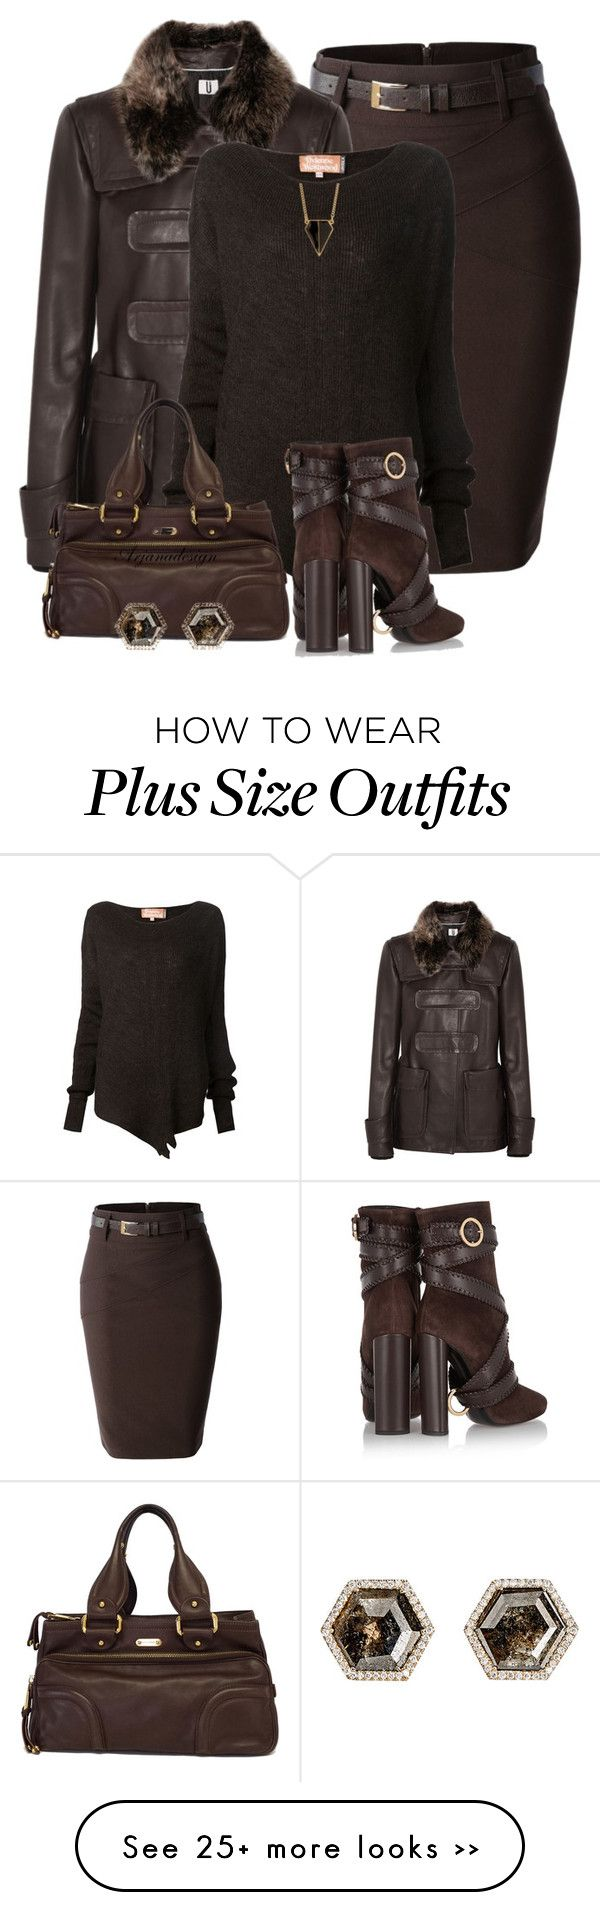 """""""CHOCOLATE BROWN FOR FALL"""" by arjanadesign on Polyvore featuring LE3NO, Topshop Unique, Vivienne Westwood, Tom Ford, Marc Jacobs, Monique Péan, Rebecca Minkoff, WorkWear and fall2015"""